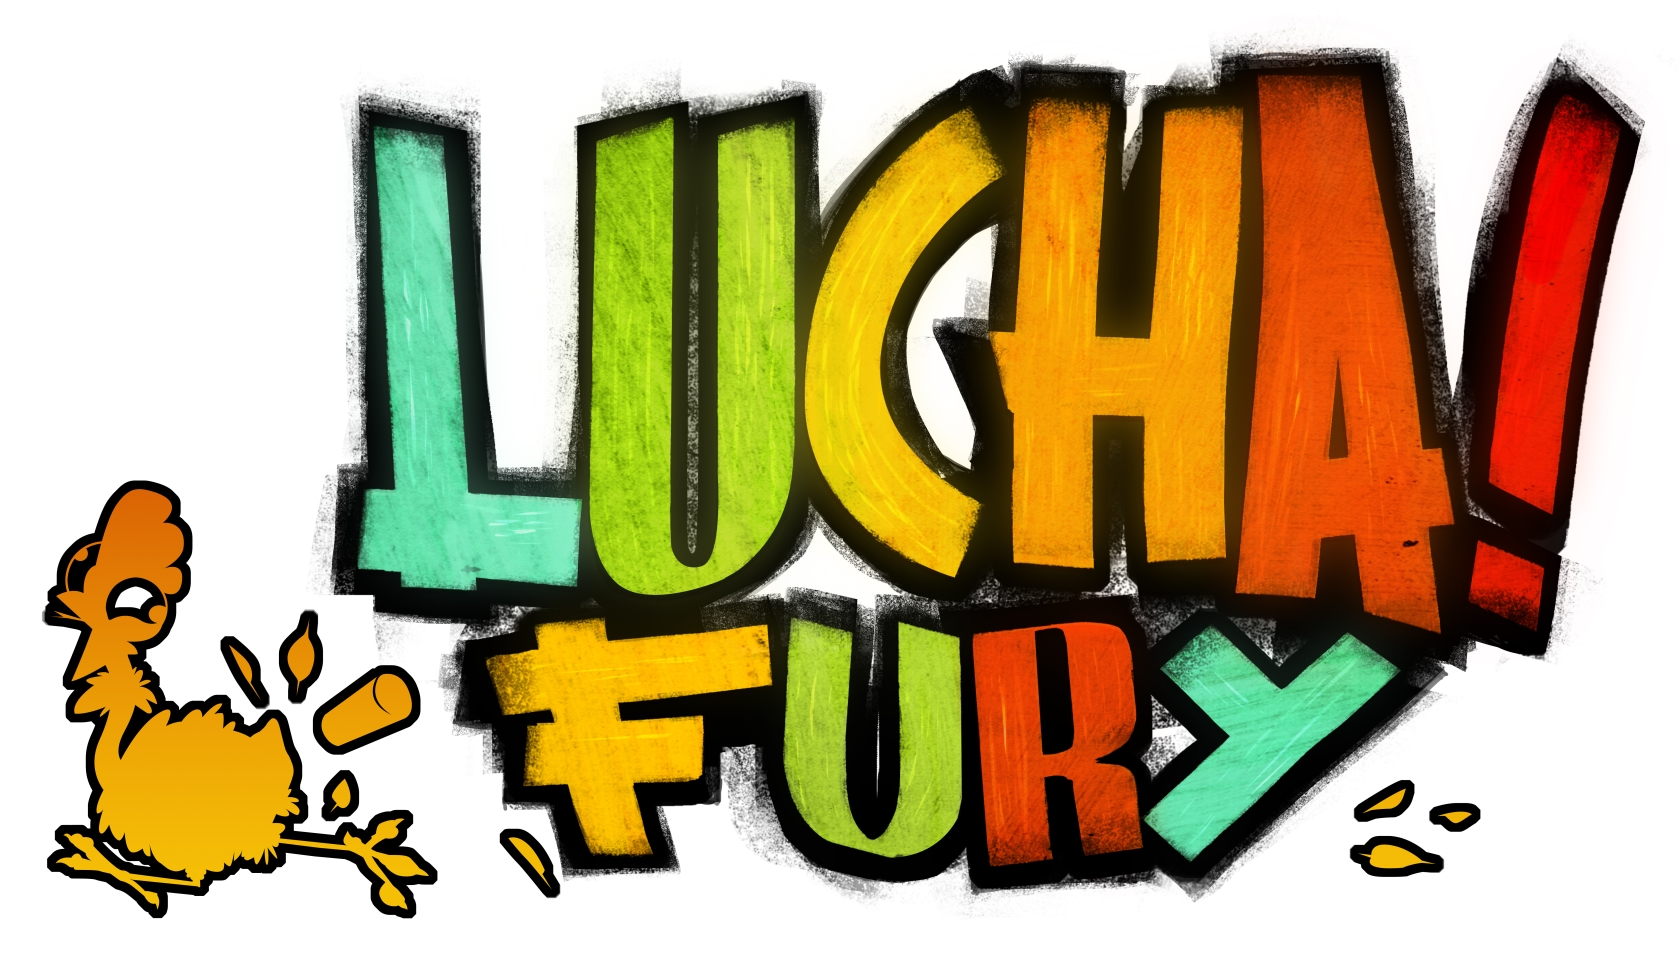 Lucha Fury: Life as a henchman isn't all its cracked up to be.